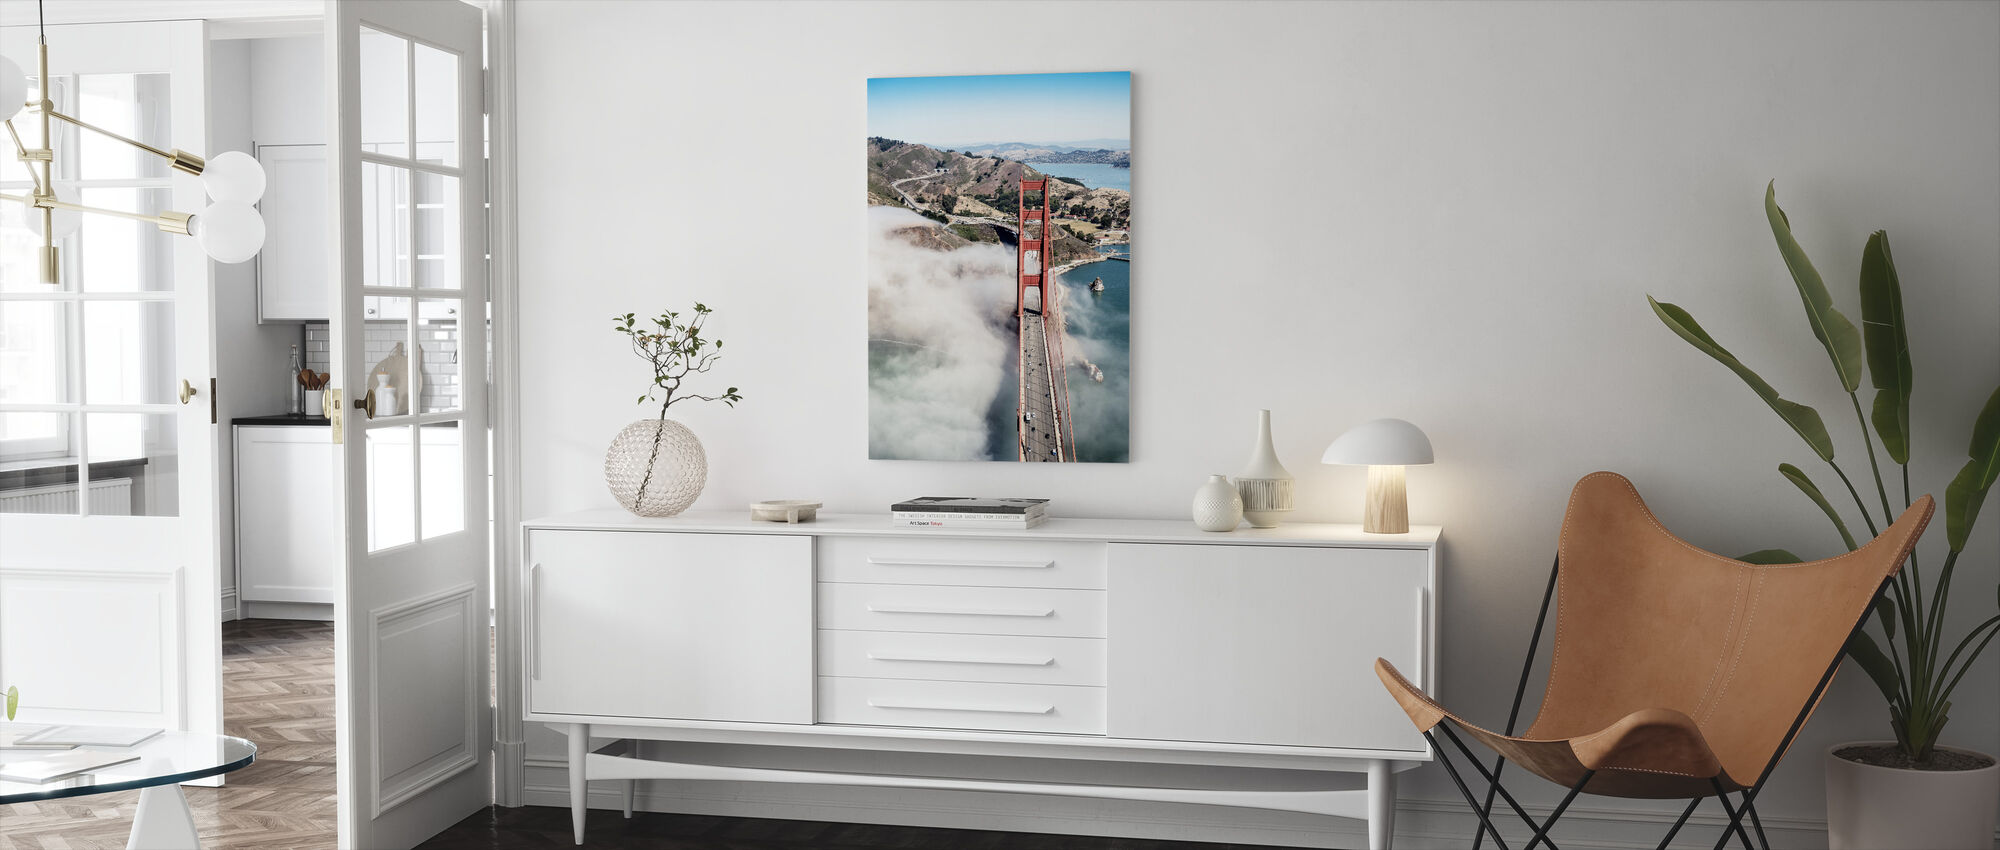 Golden Gate Brug - Canvas print - Woonkamer